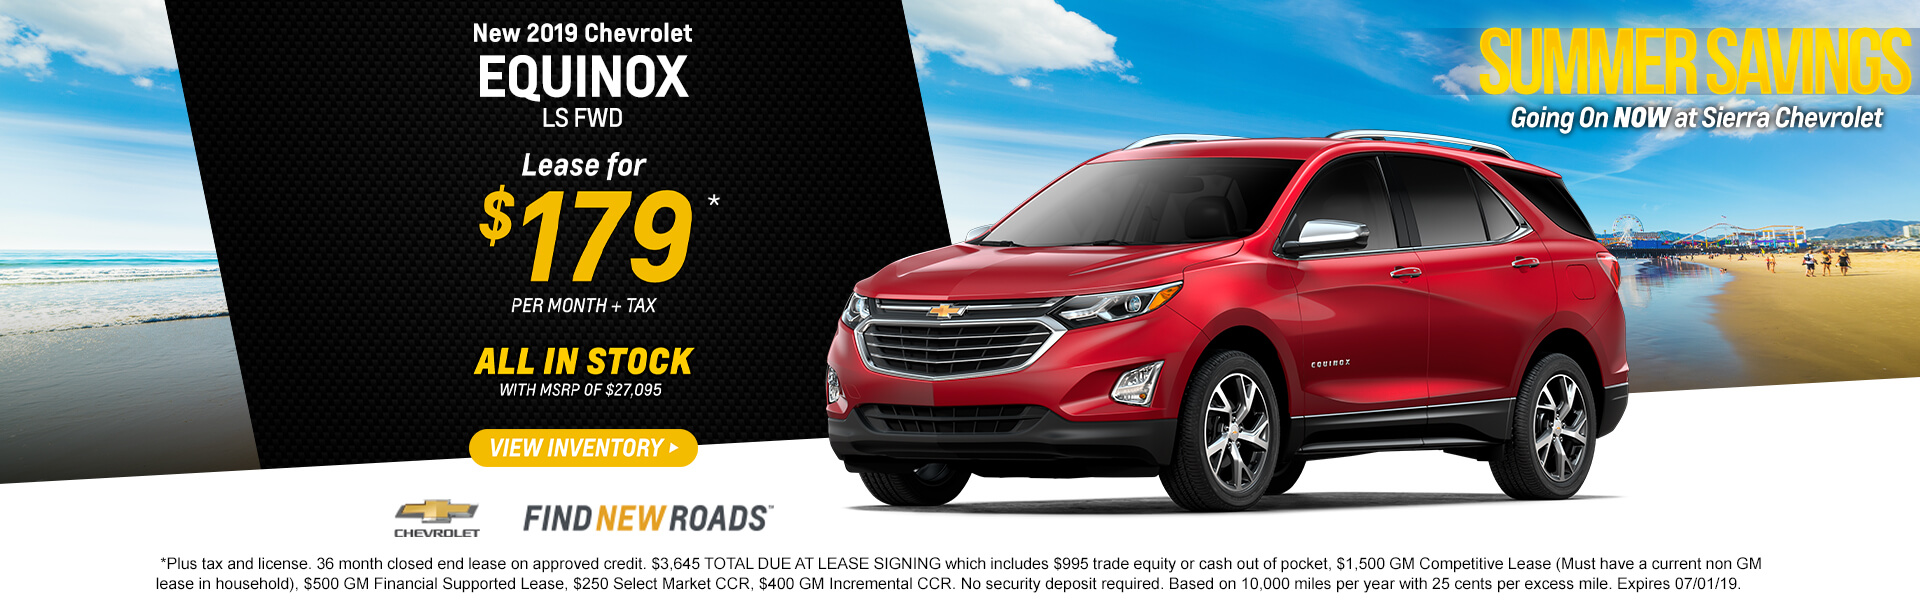 2019 Chevrolet Equinox LS FWD  Lease for $179*  + tax per month  ALL IN STOCK with MSPR of $27,095   *Plus tax and license. 36 month closed end lease on approved credit. $3,645 TOTAL DUE AT LEASE SIGNING which includes $995 trade equity or cash out of pocket, $1,500 GM Competitive Lease (Must have a current non GM lease in household), $500 GM Financial Supported Lease, $250 Select Market CCR, $400 GM Incremental CCR. No security deposit required. Based on 10,000 miles per year with 25 cents per excess mile. Expires 07/01/19.